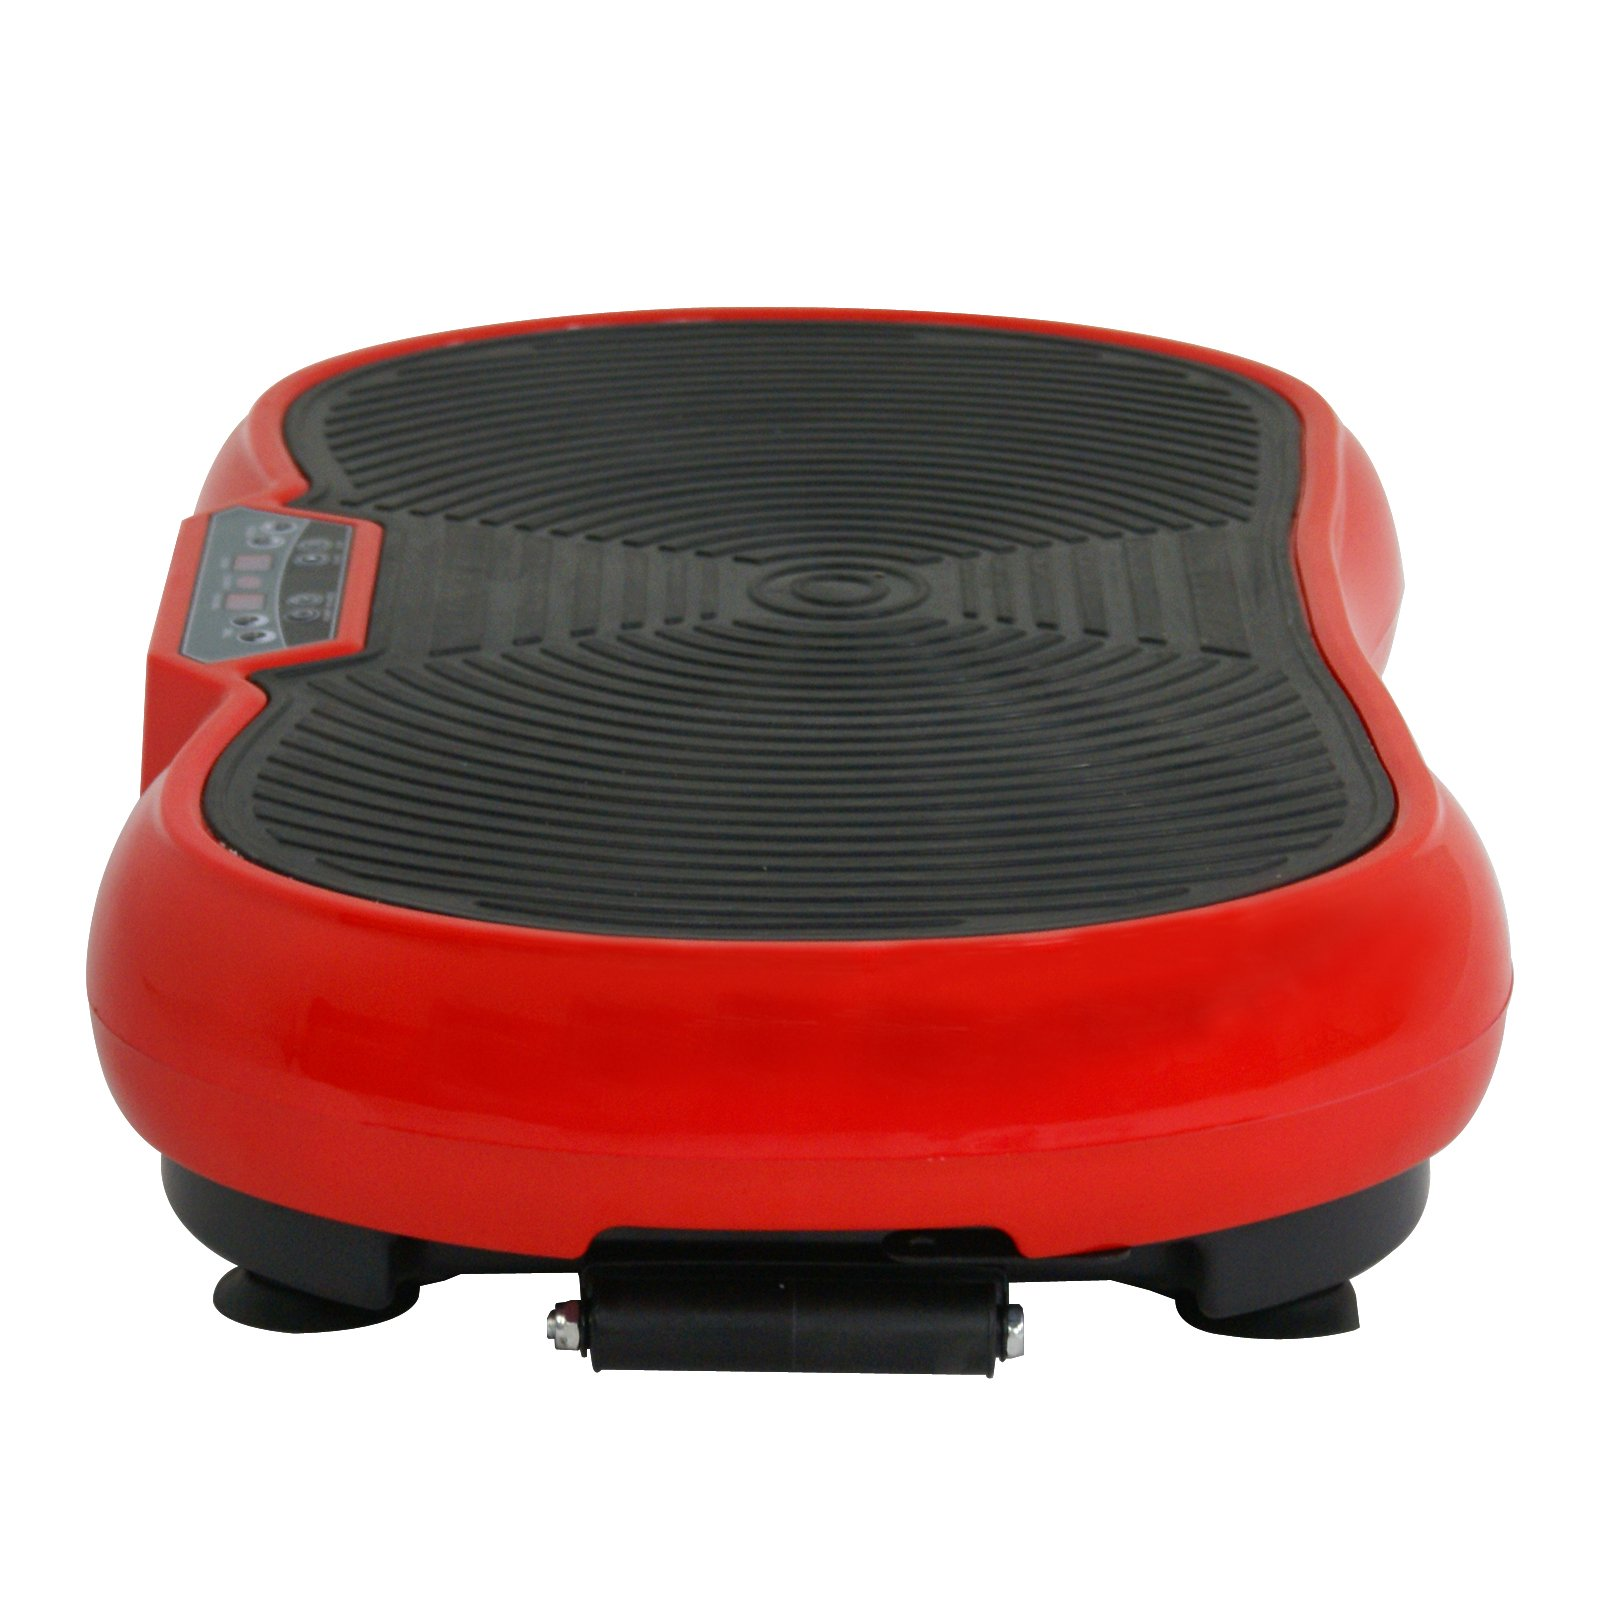 Fitness Vibration Platform Full Body Workout Machine Vibration Plate W/Remote Control and Balance Straps, Bluetooth Exercise Equipment(Red) by Nova Microdermabrasion (Image #8)